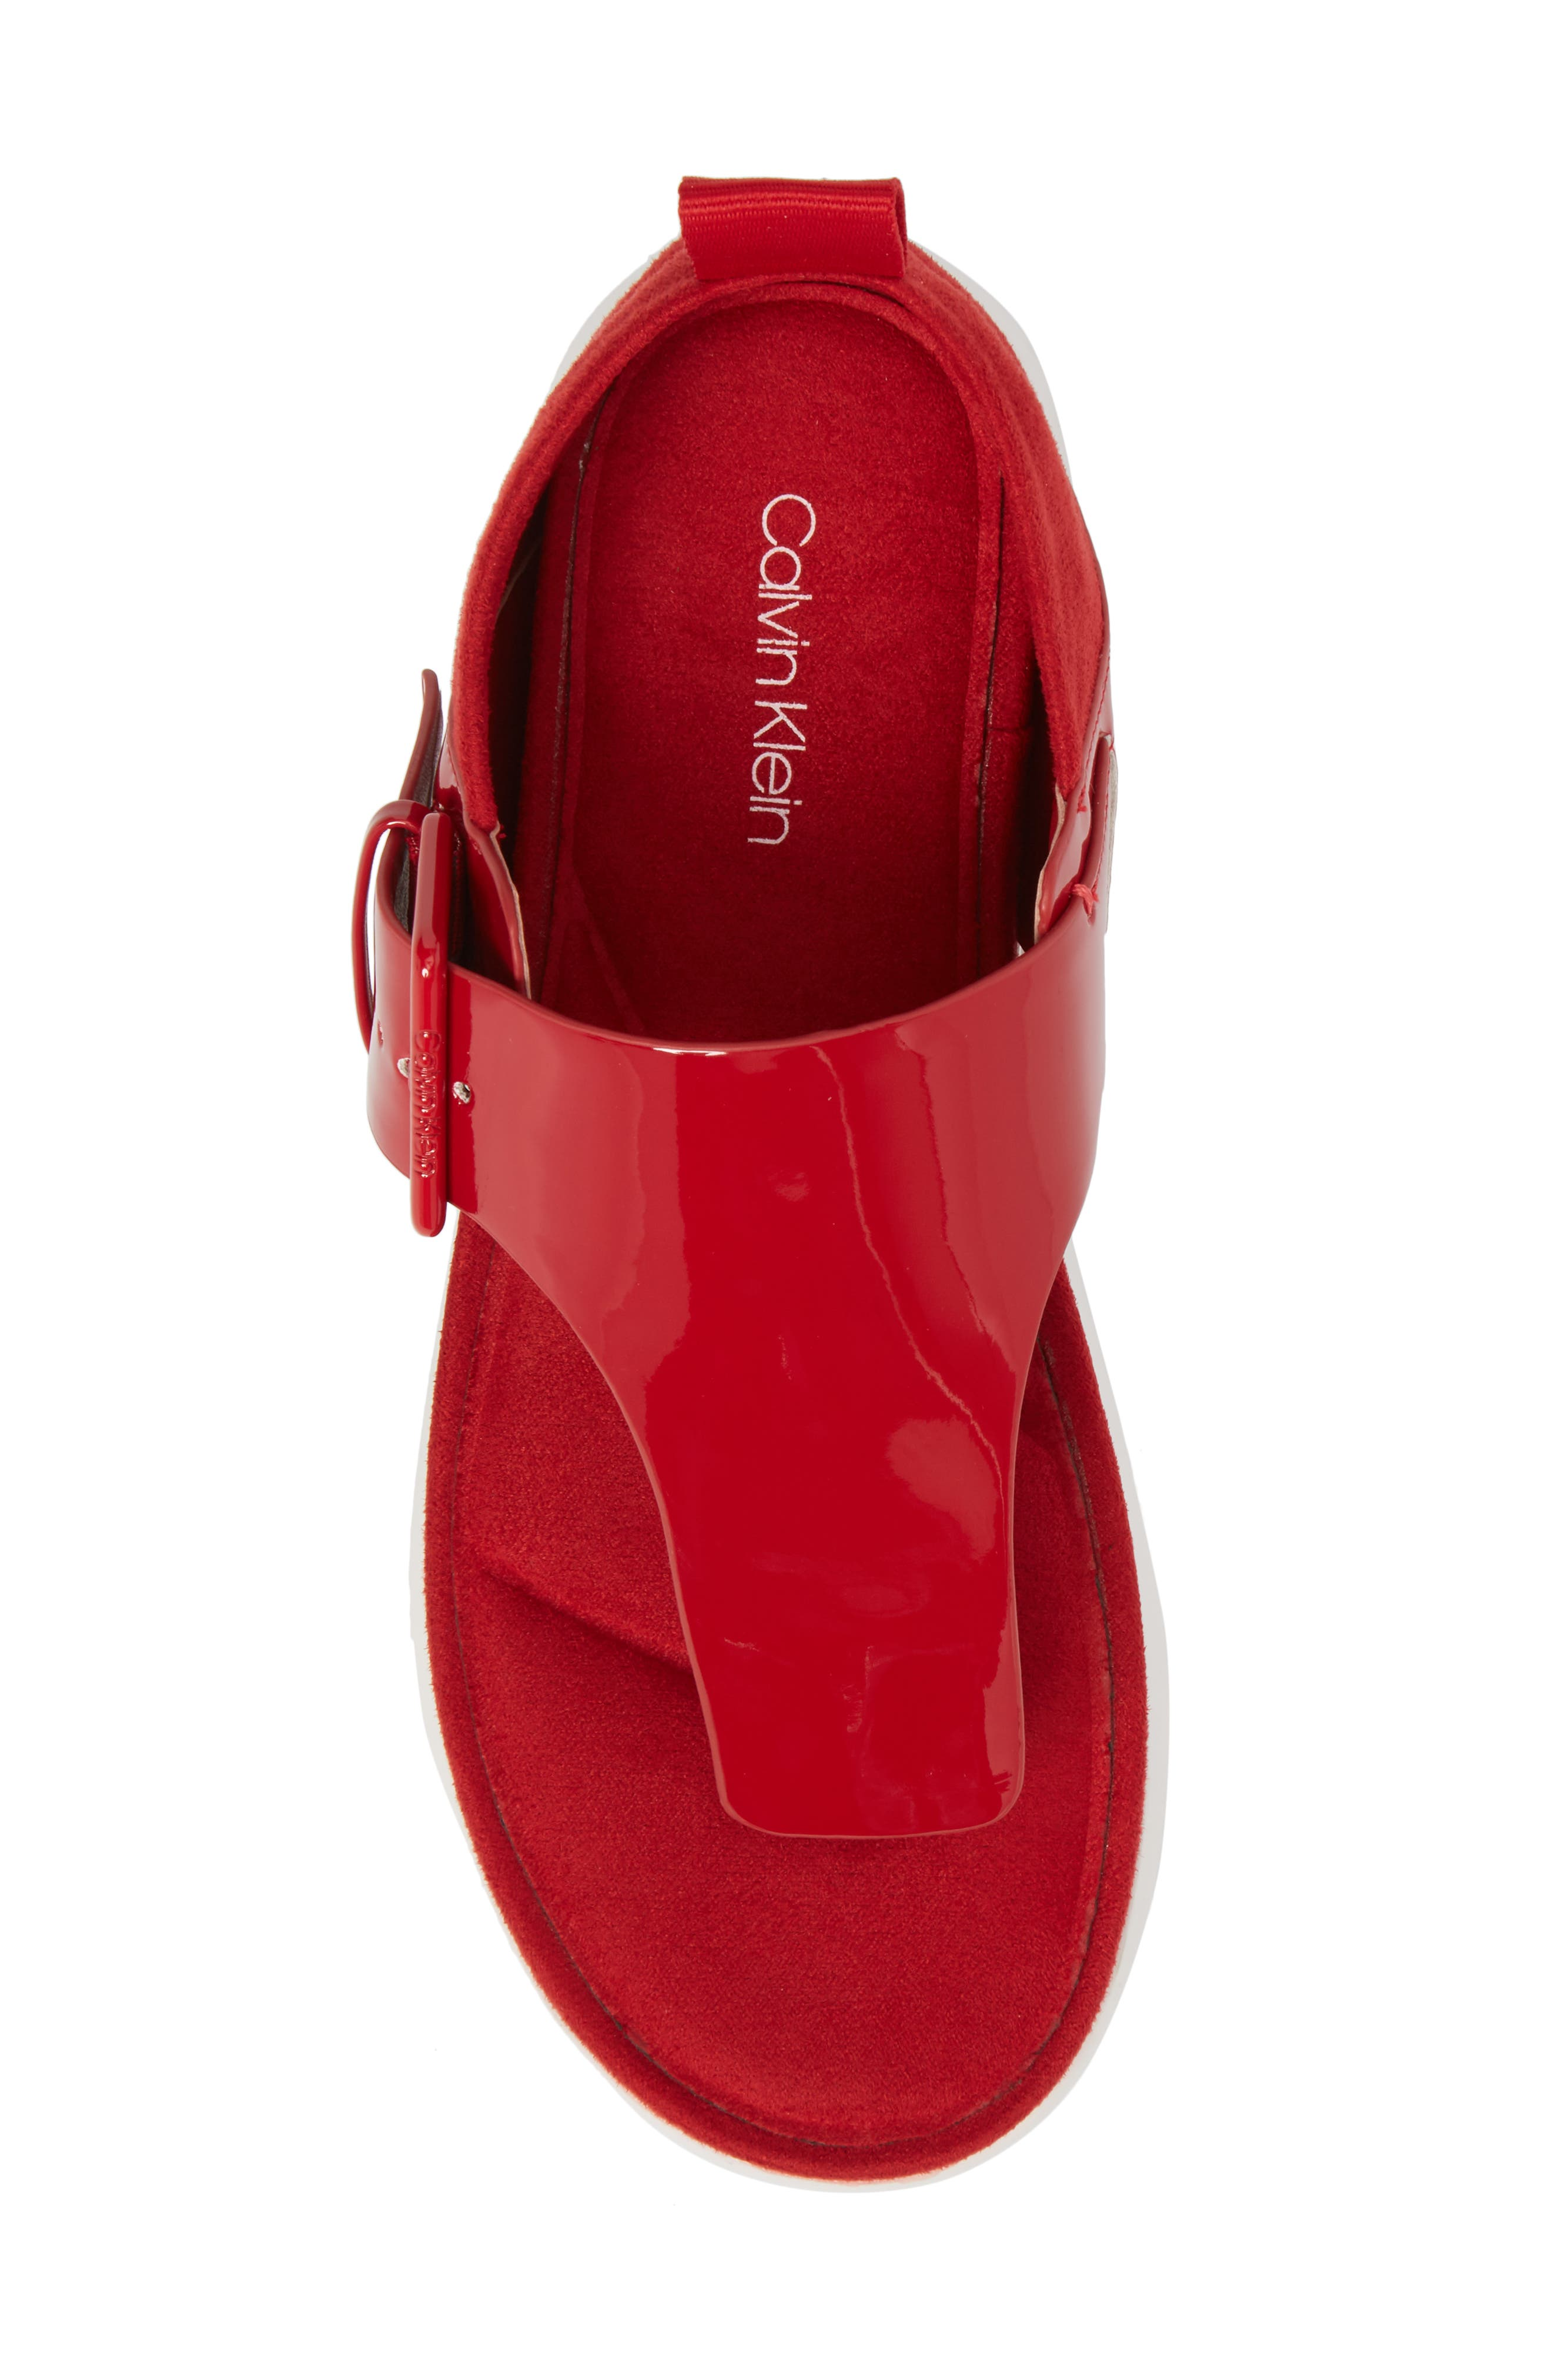 Dionay Wedge Sandal,                             Alternate thumbnail 15, color,